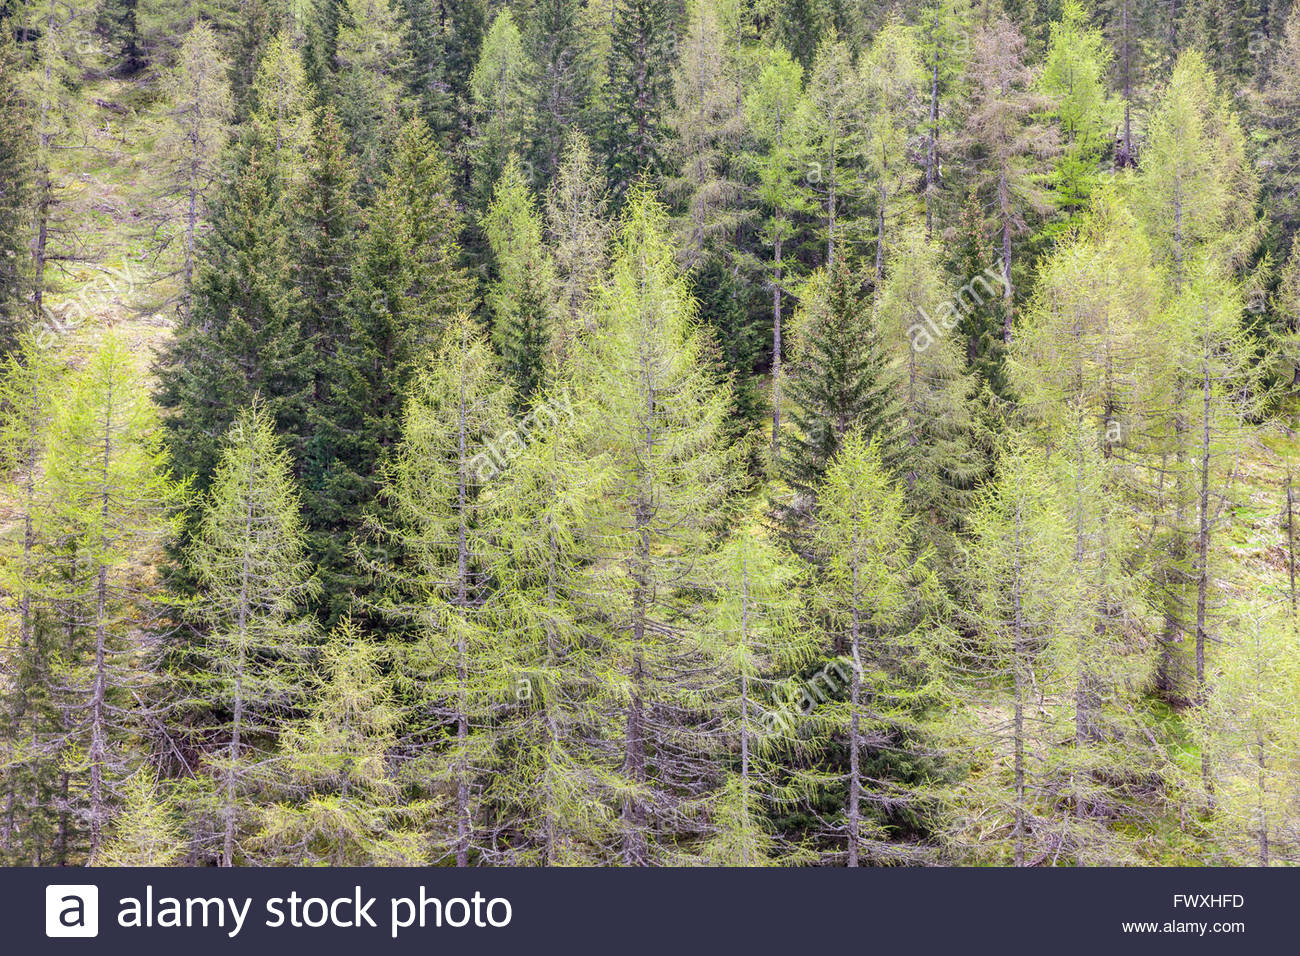 Coniferous forest in spring in Campo Tures, South Tyrol, Italy - Stock Image